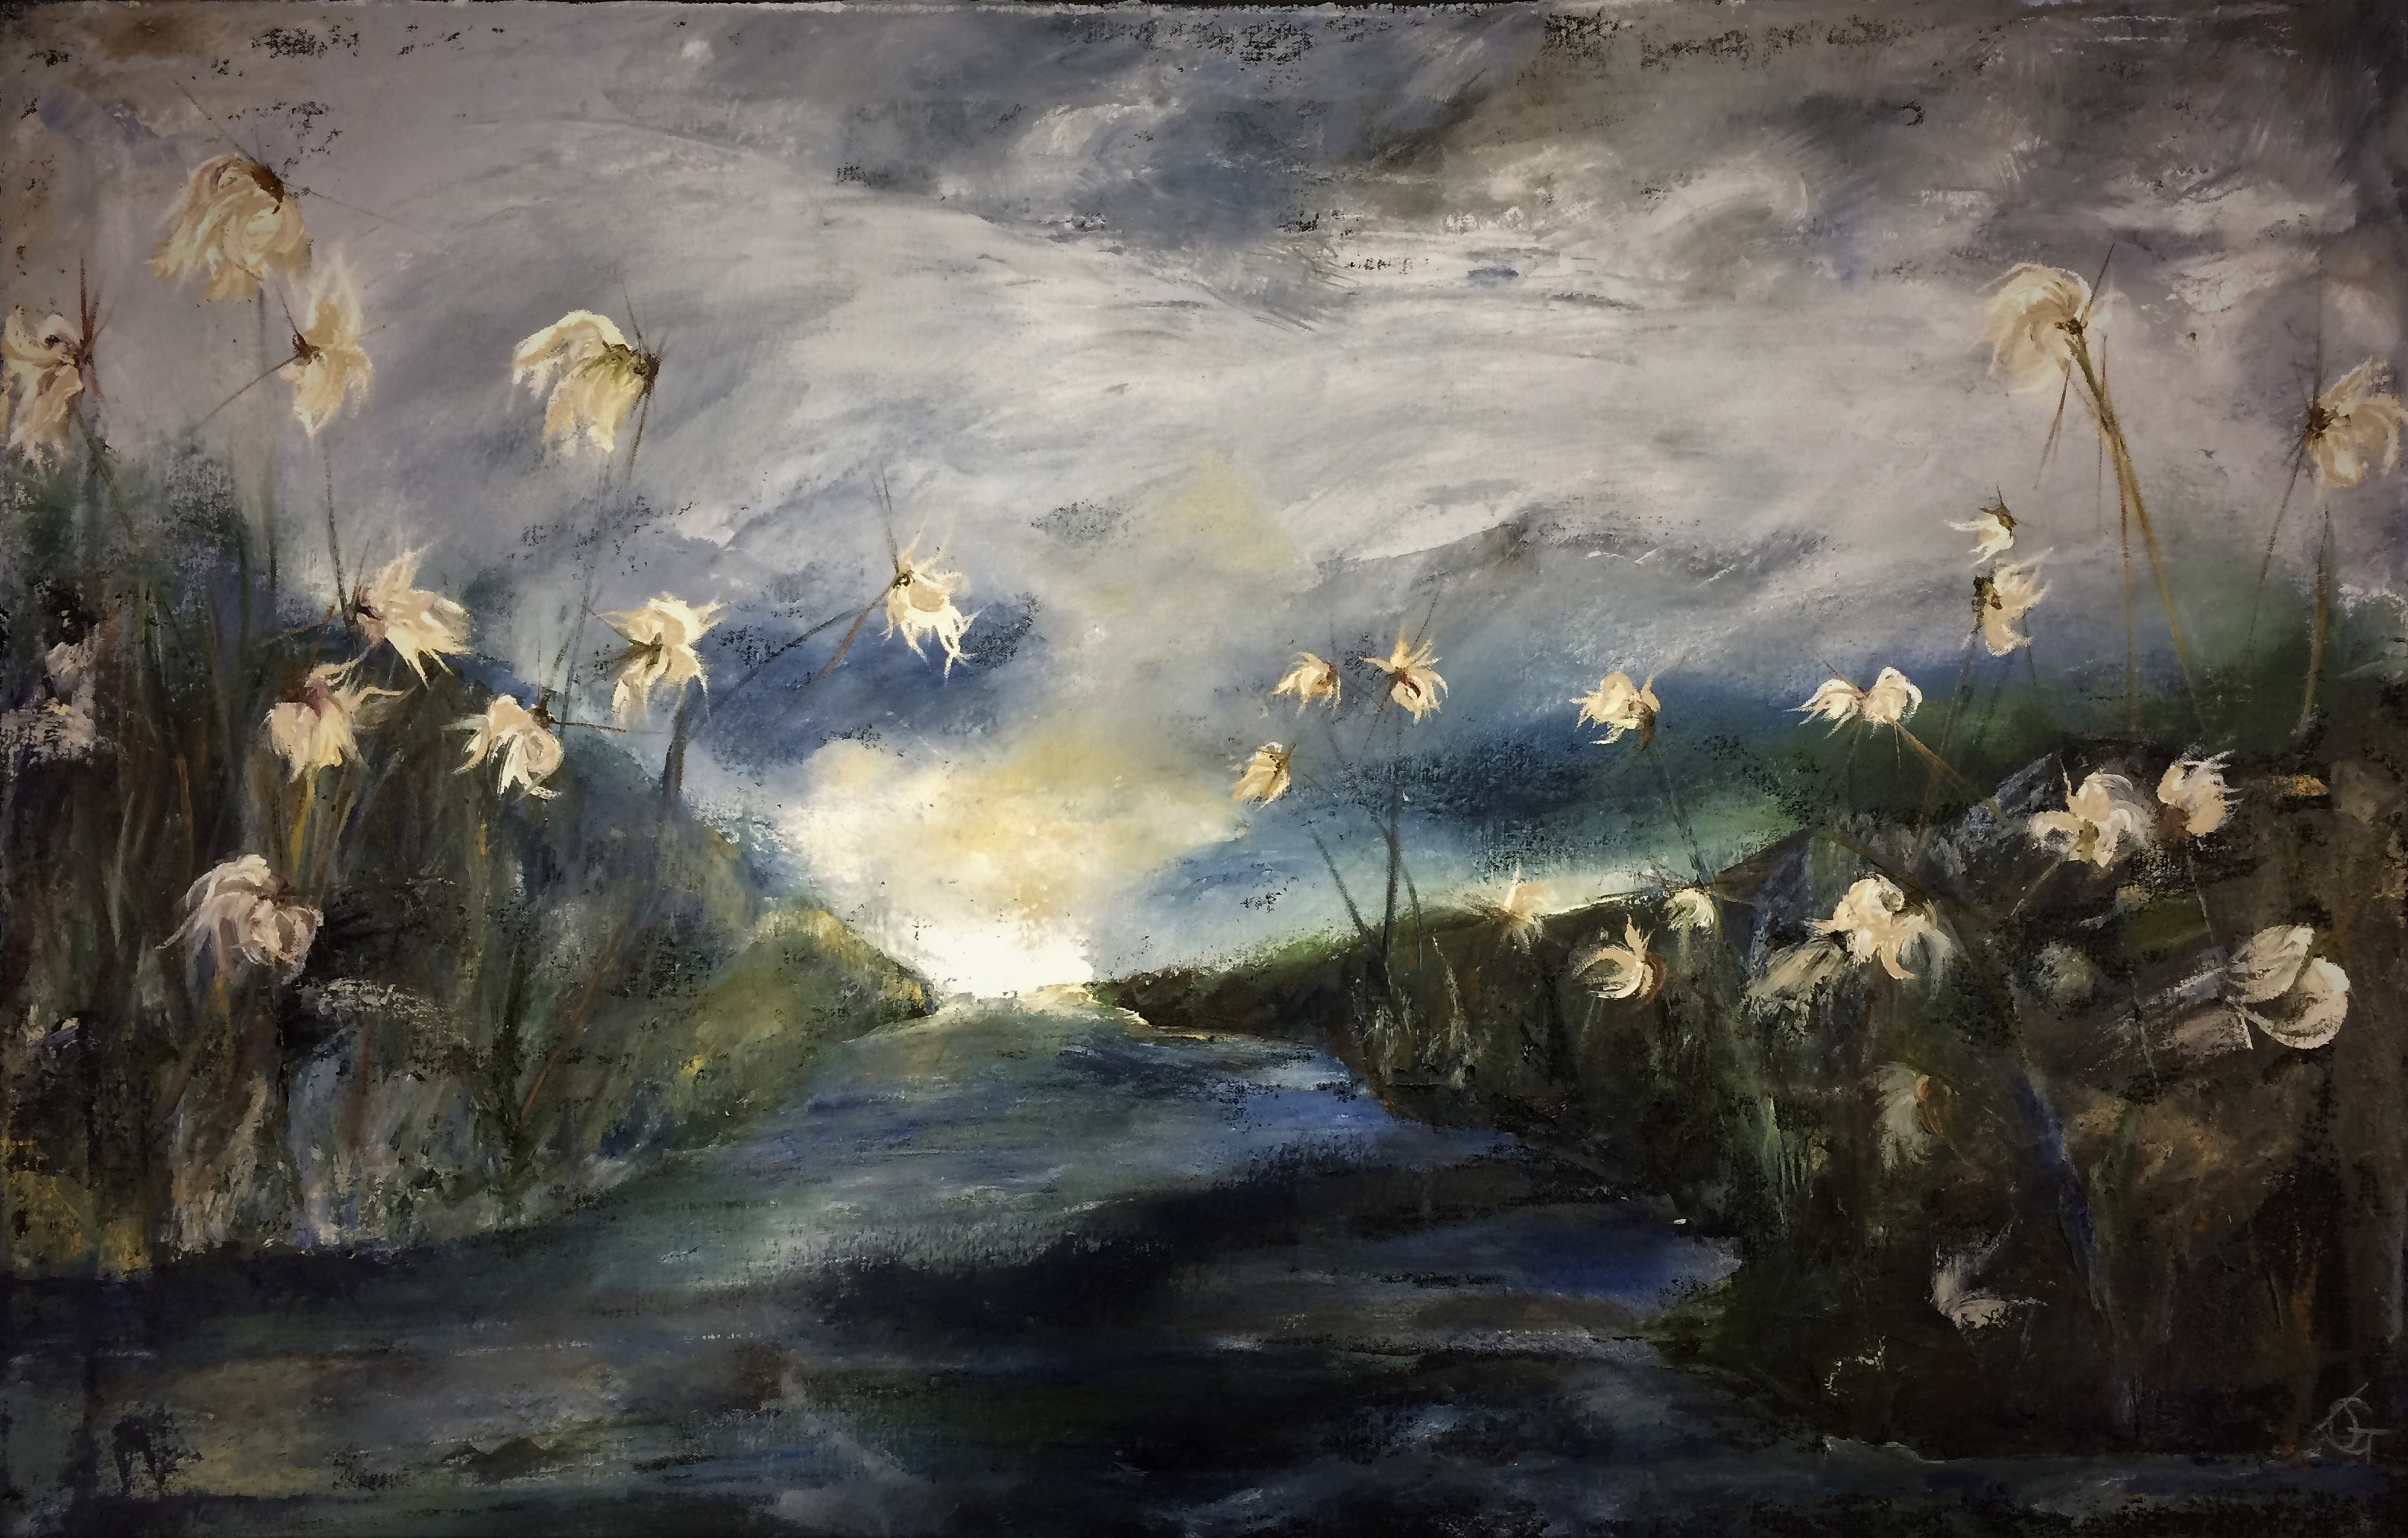 Bog, evening light I oil on canvas 65x10